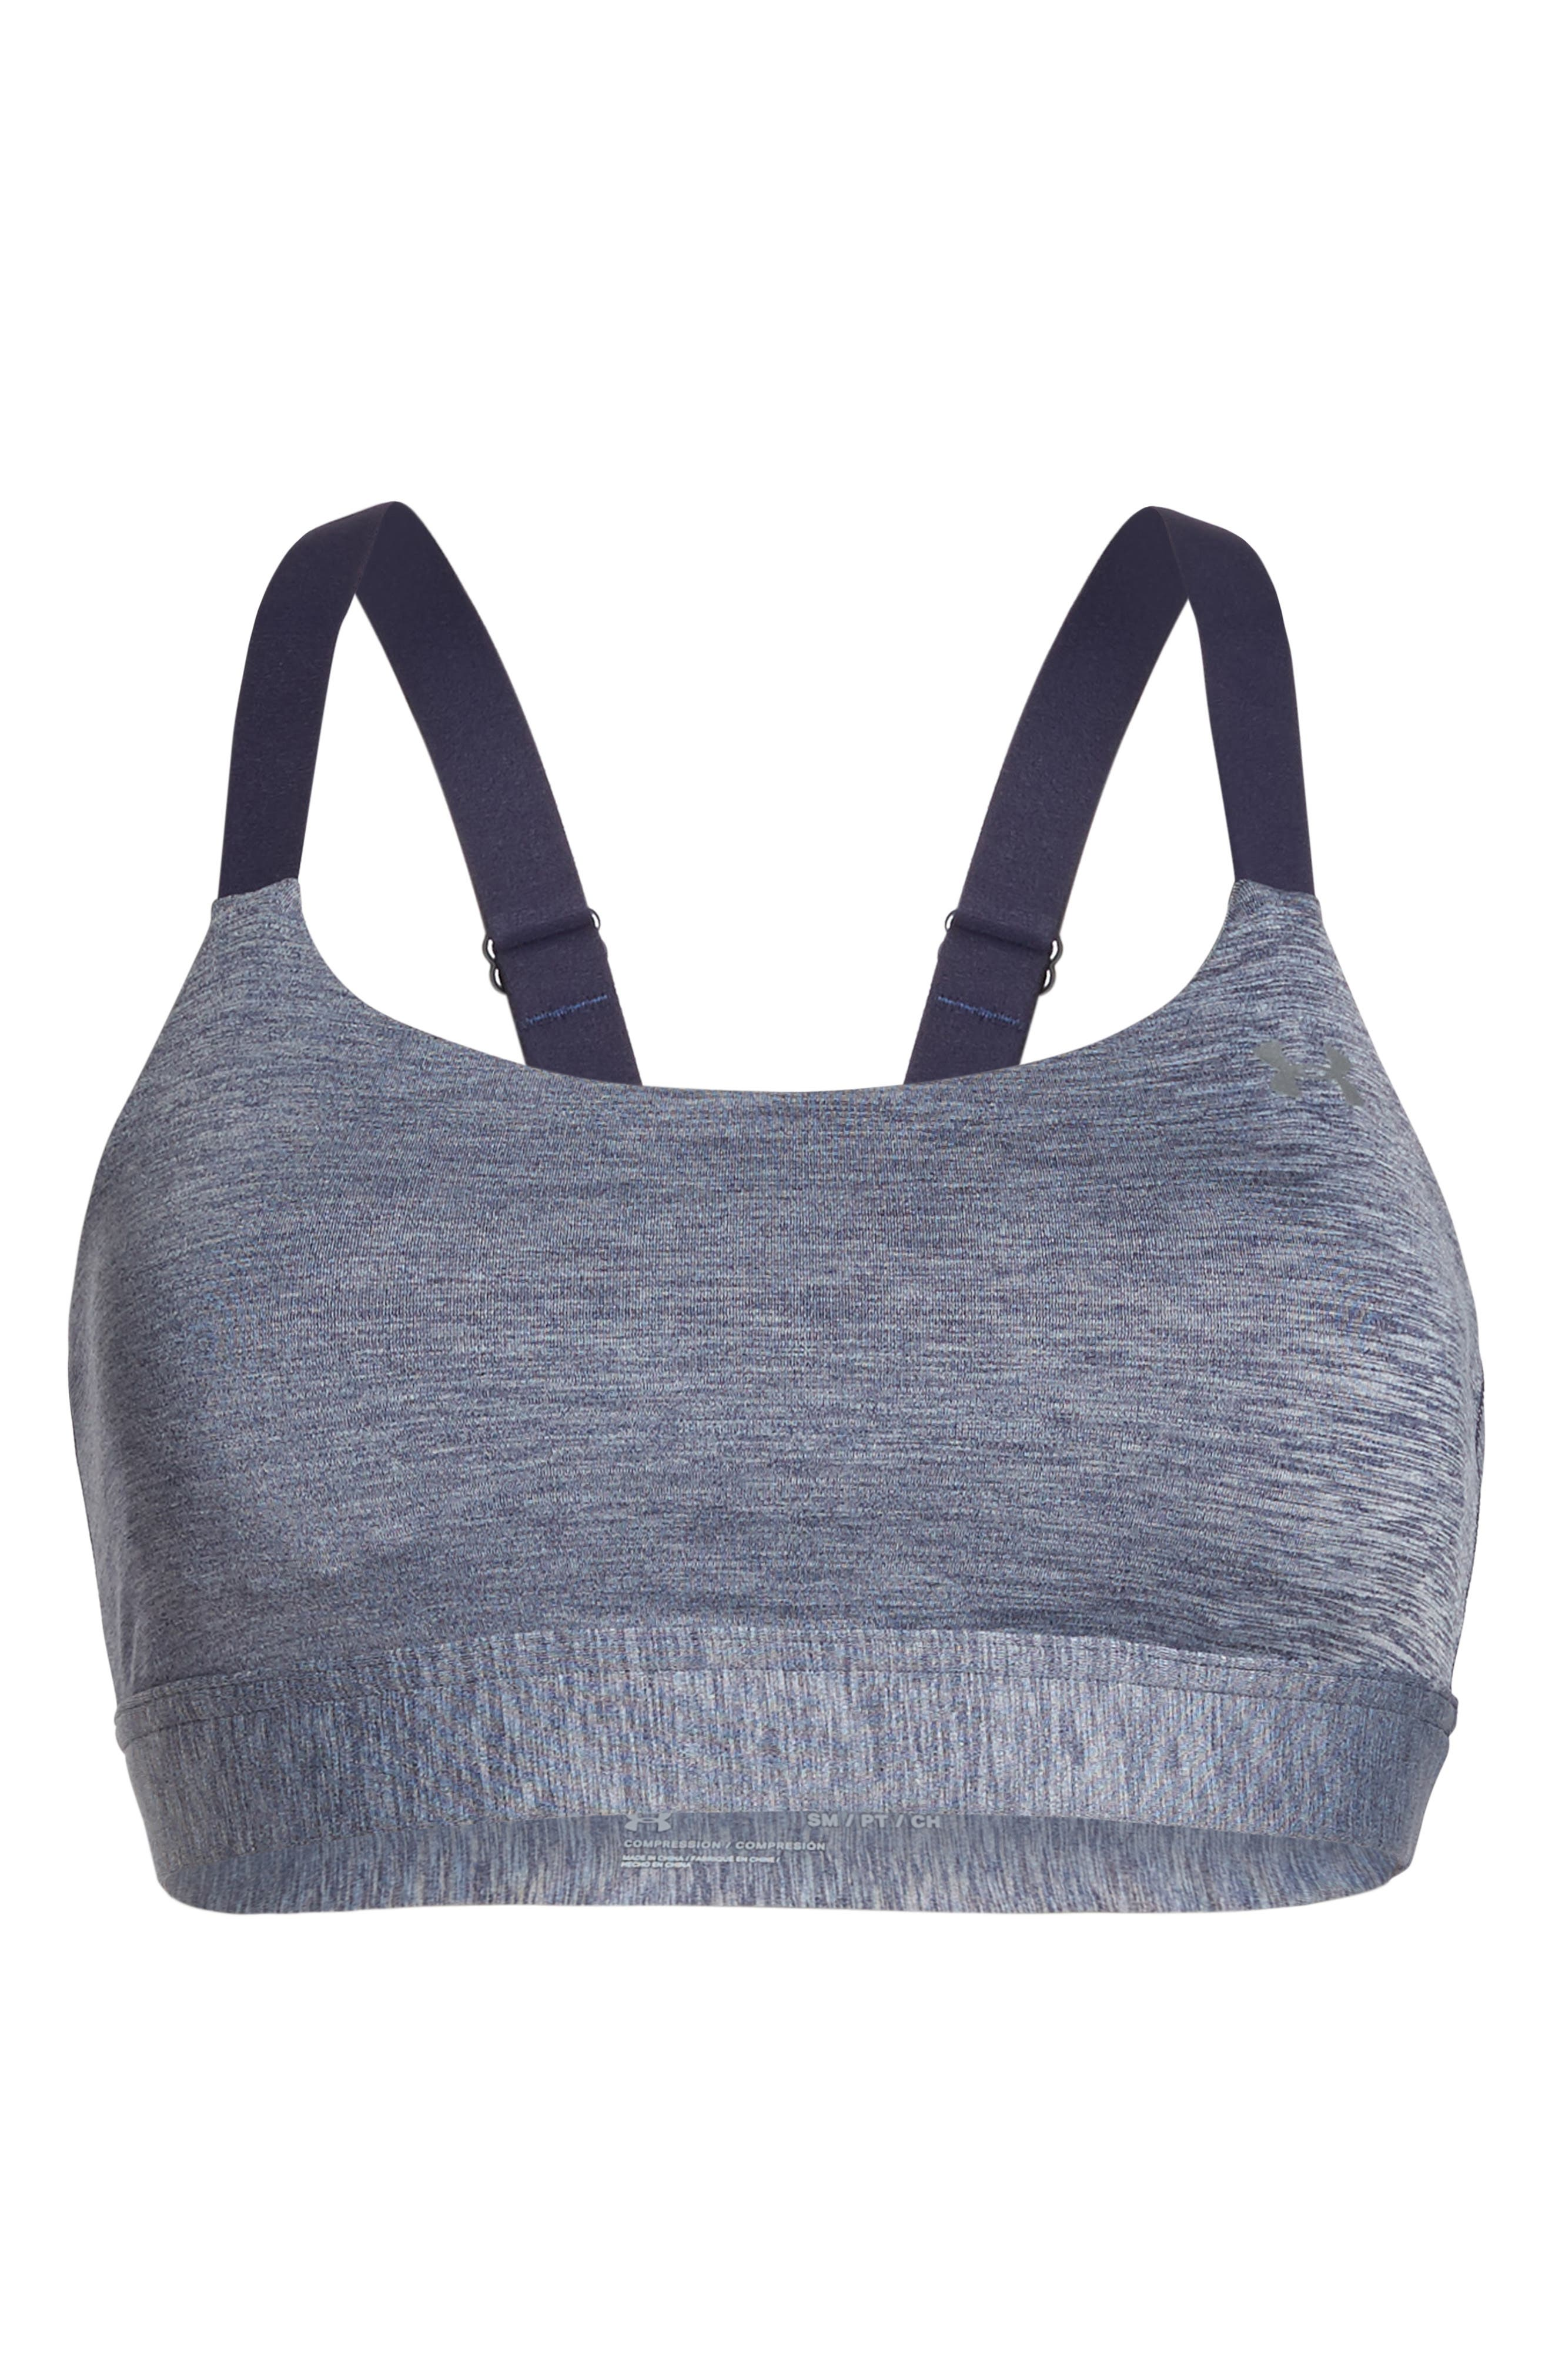 Eclipse Sports Bra,                             Alternate thumbnail 6, color,                             Navy/ Light Heather/ Silver